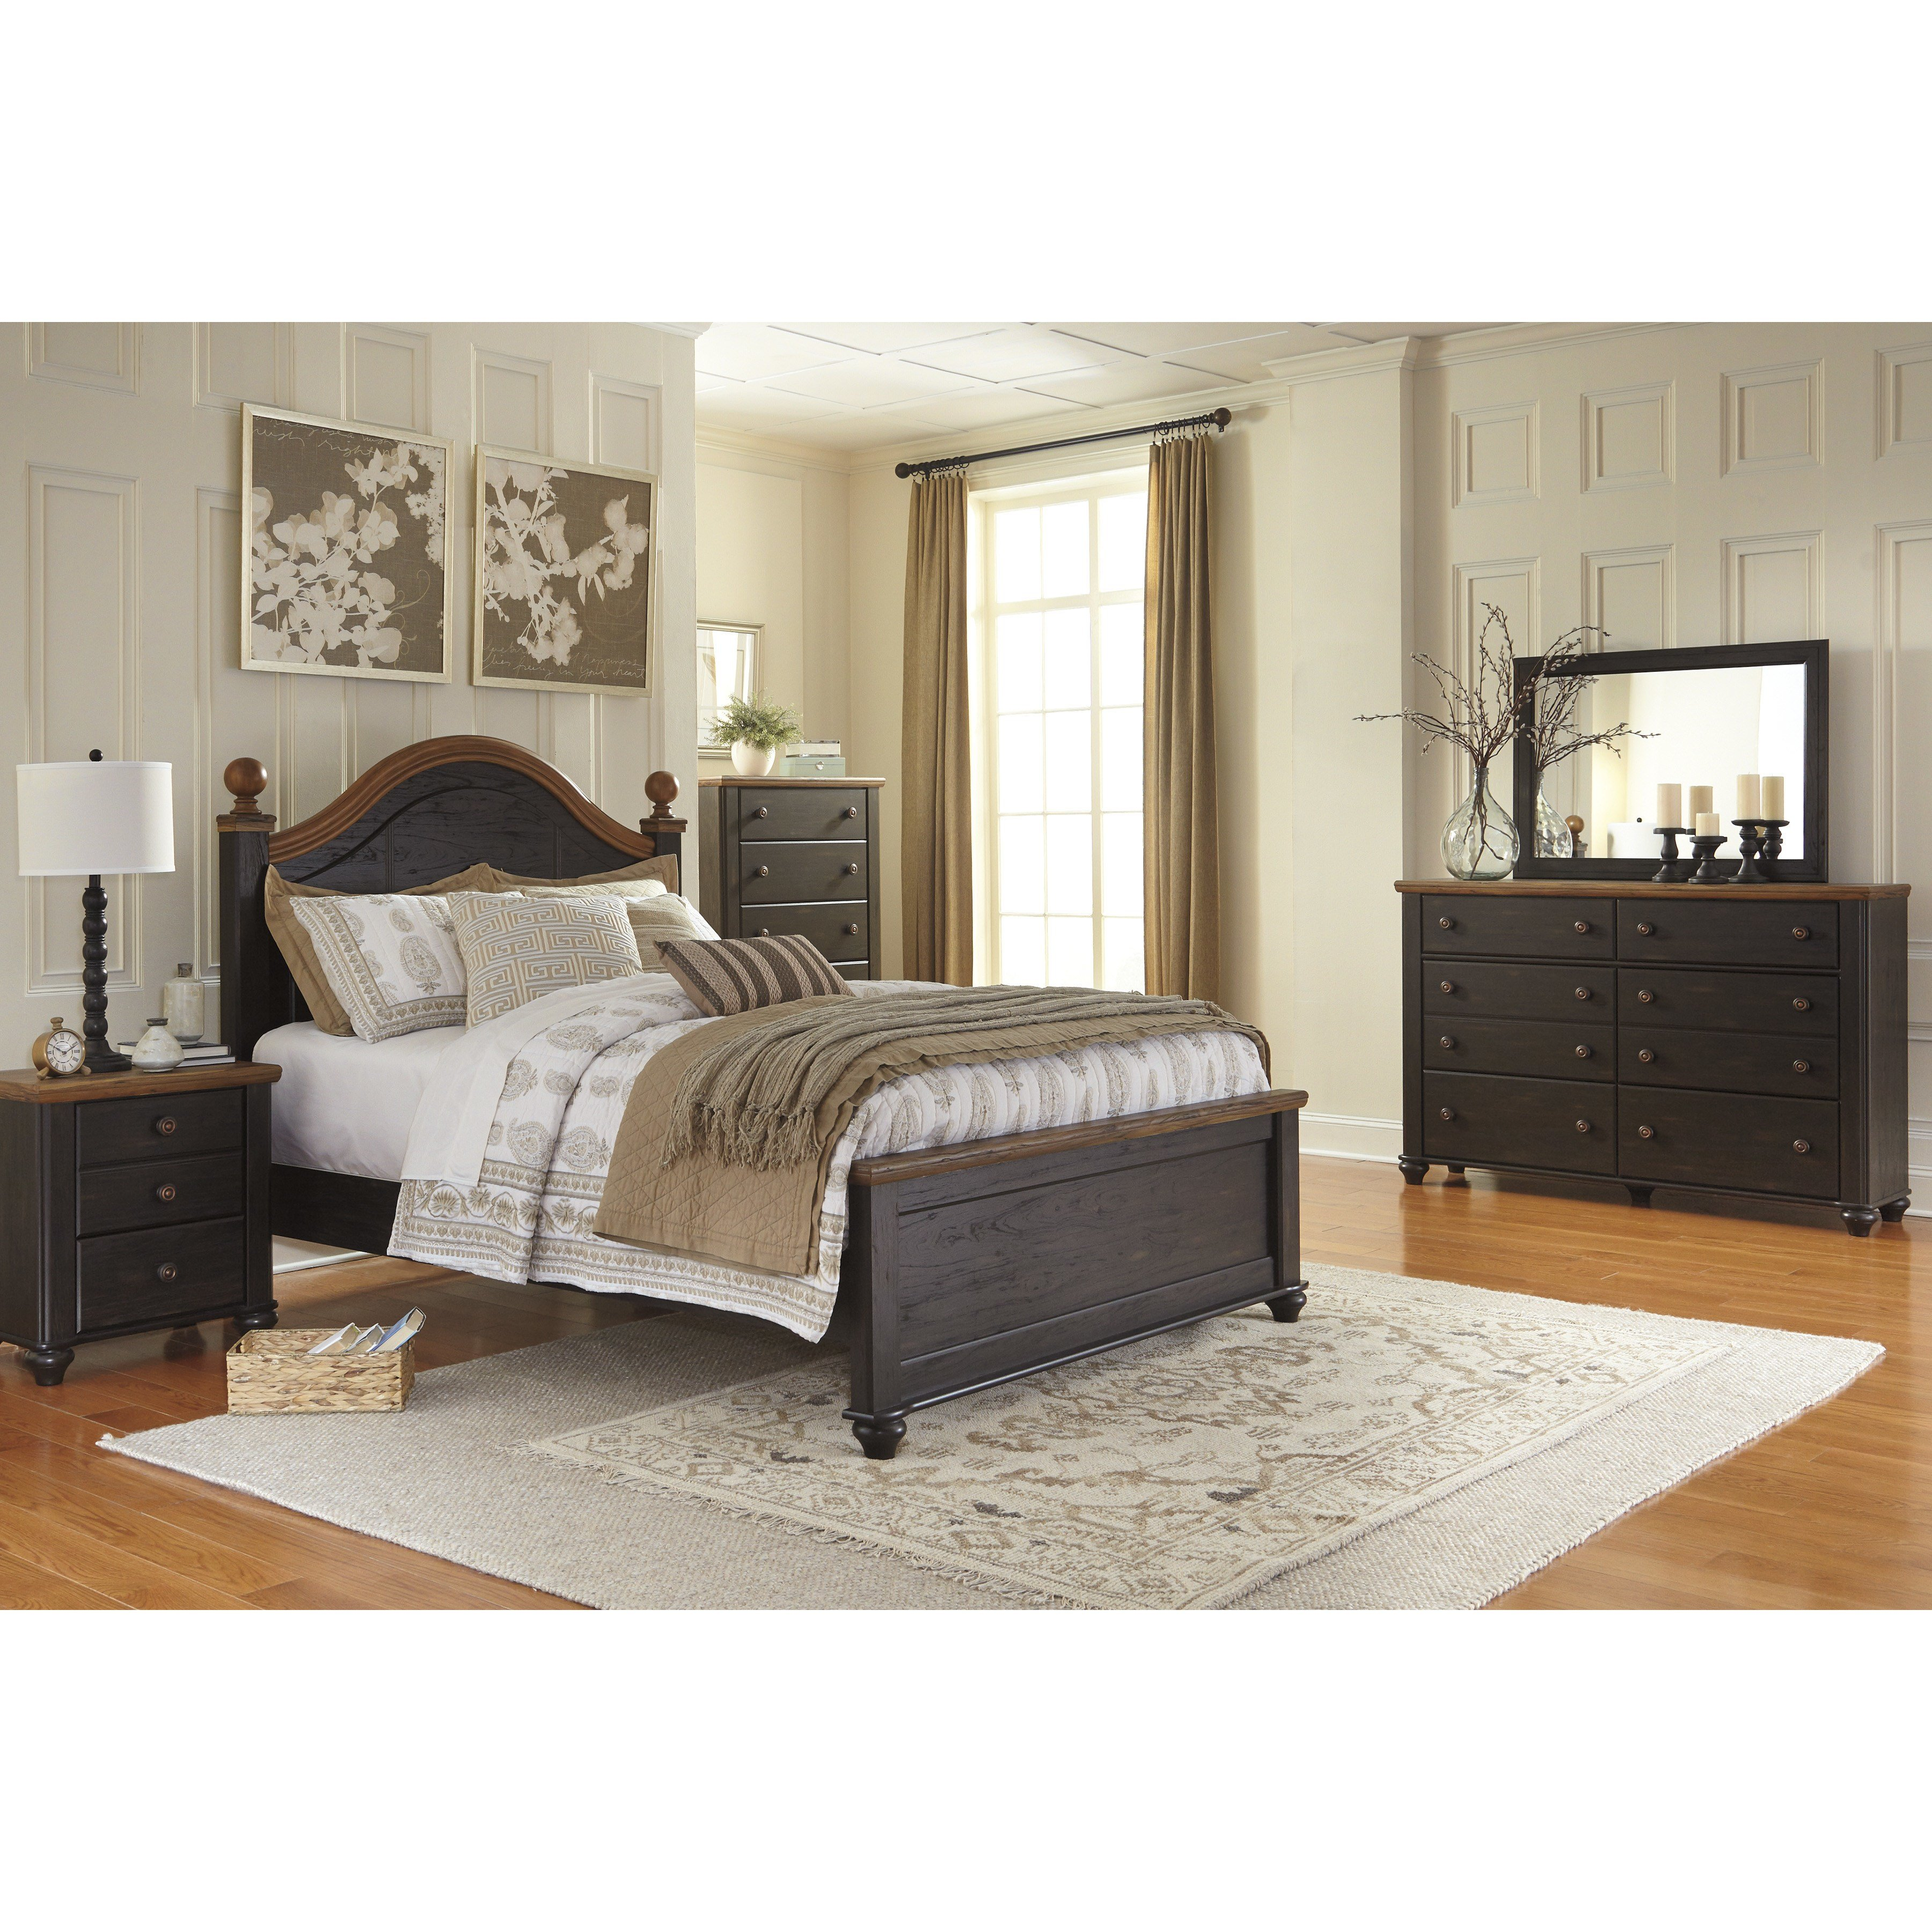 Best Signature Design By Ashley Panel Customizable Bedroom Set With Pictures